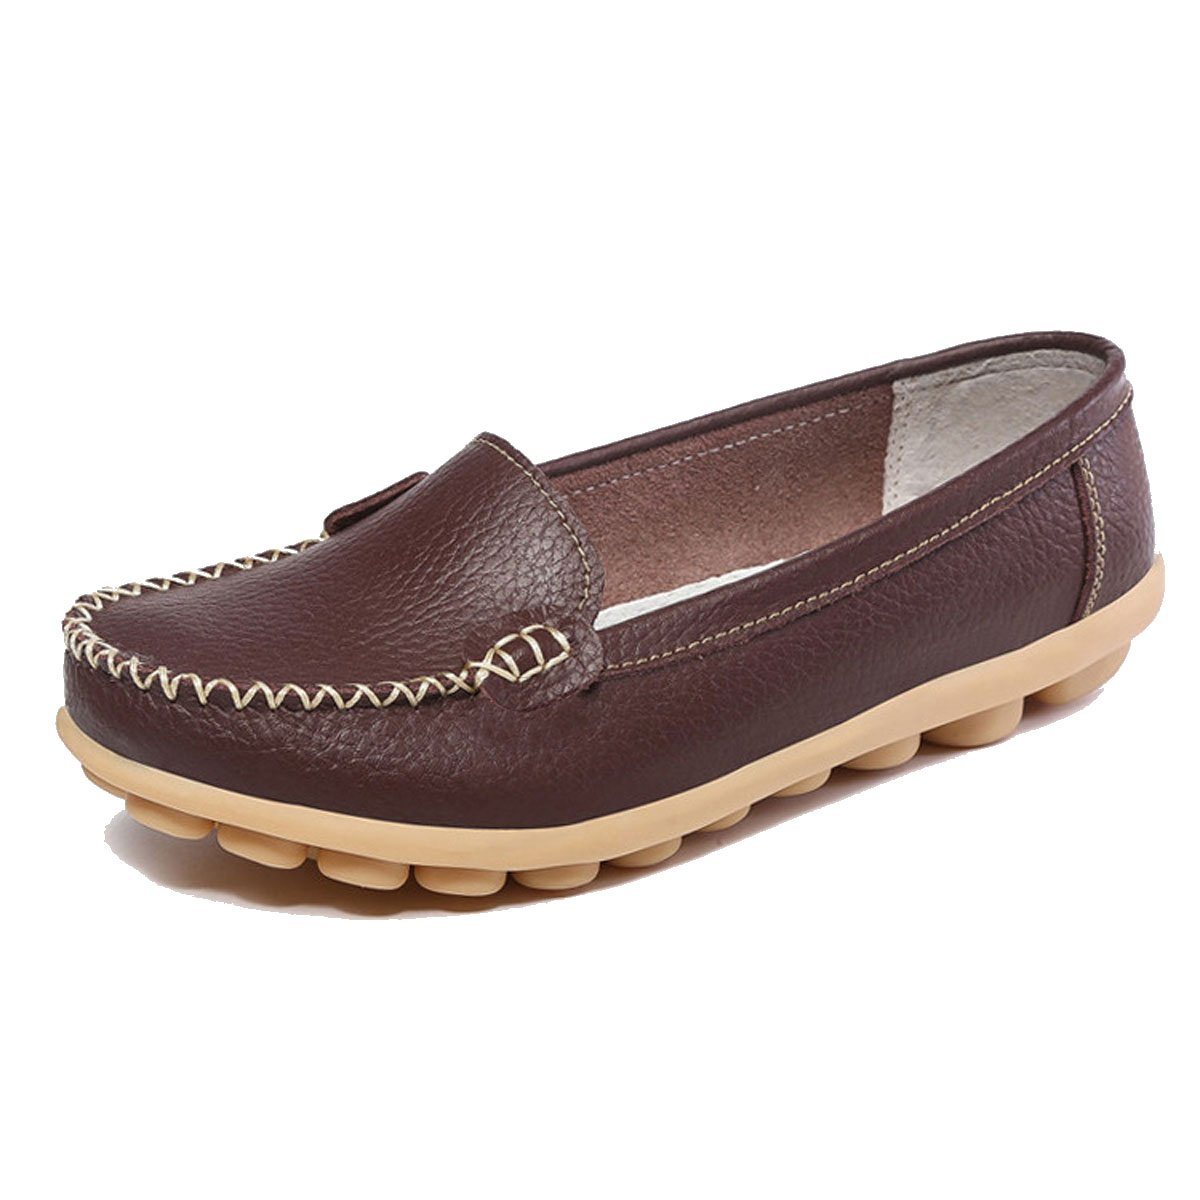 Orangetime Women's Penny Loafers Slip On Flats Casual-Soft Breathable PU Leather Boat Shoes Comfort Driving Shoes Brown 40